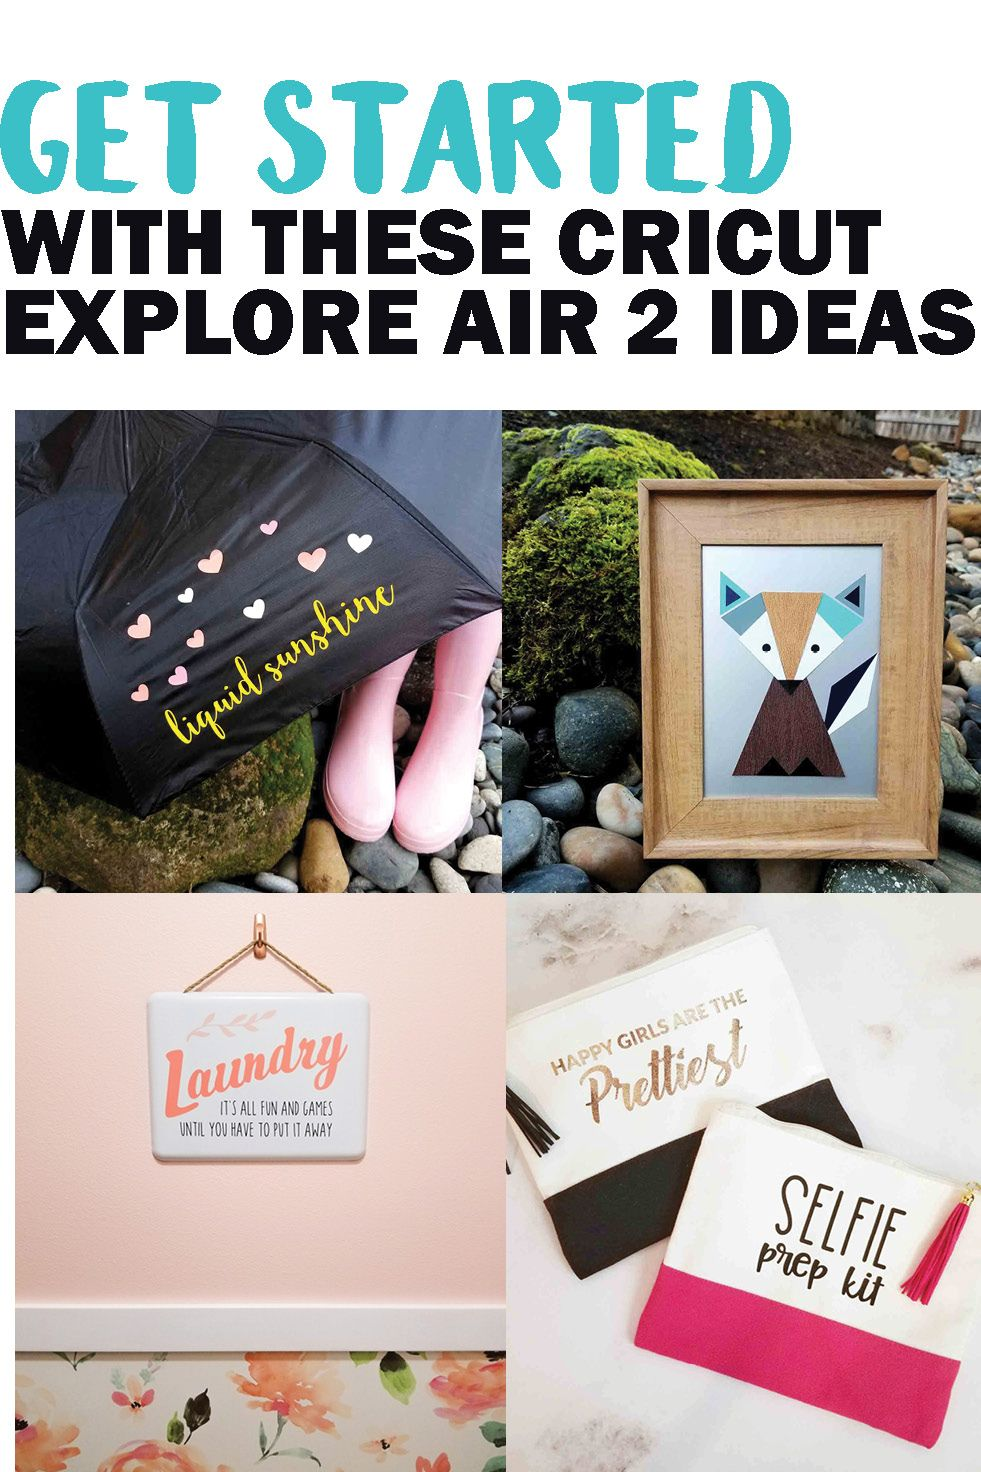 What To Make With A Cricut Explore Air 2 In 2020 Cricut Cricut Crafts Cricut Explore Air 2